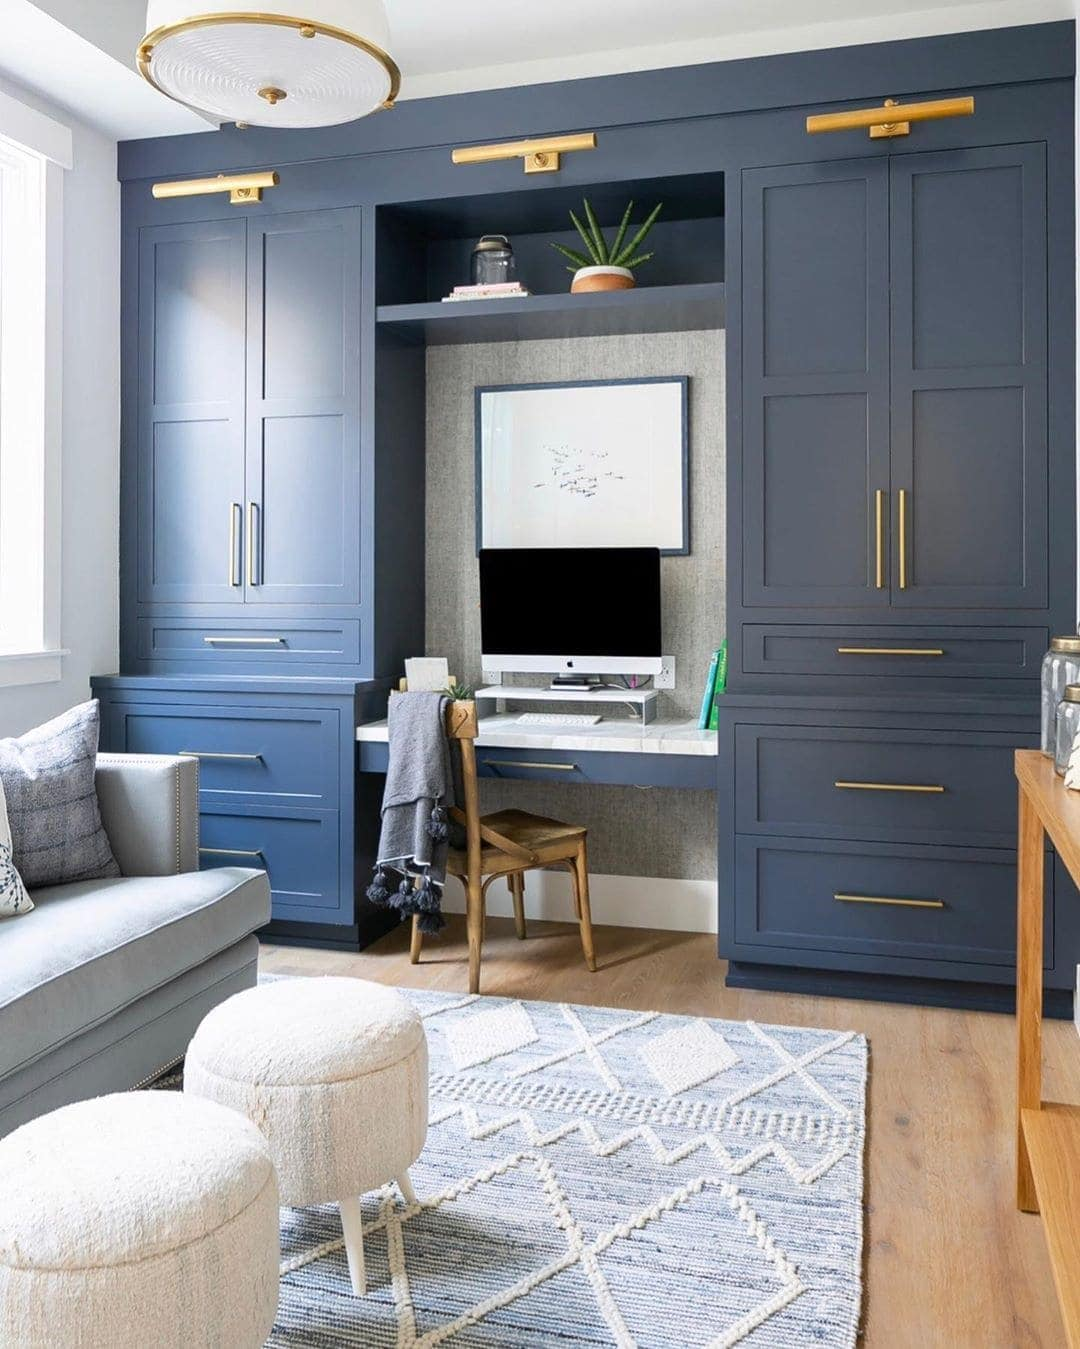 Small office with blue drawers next to the desk